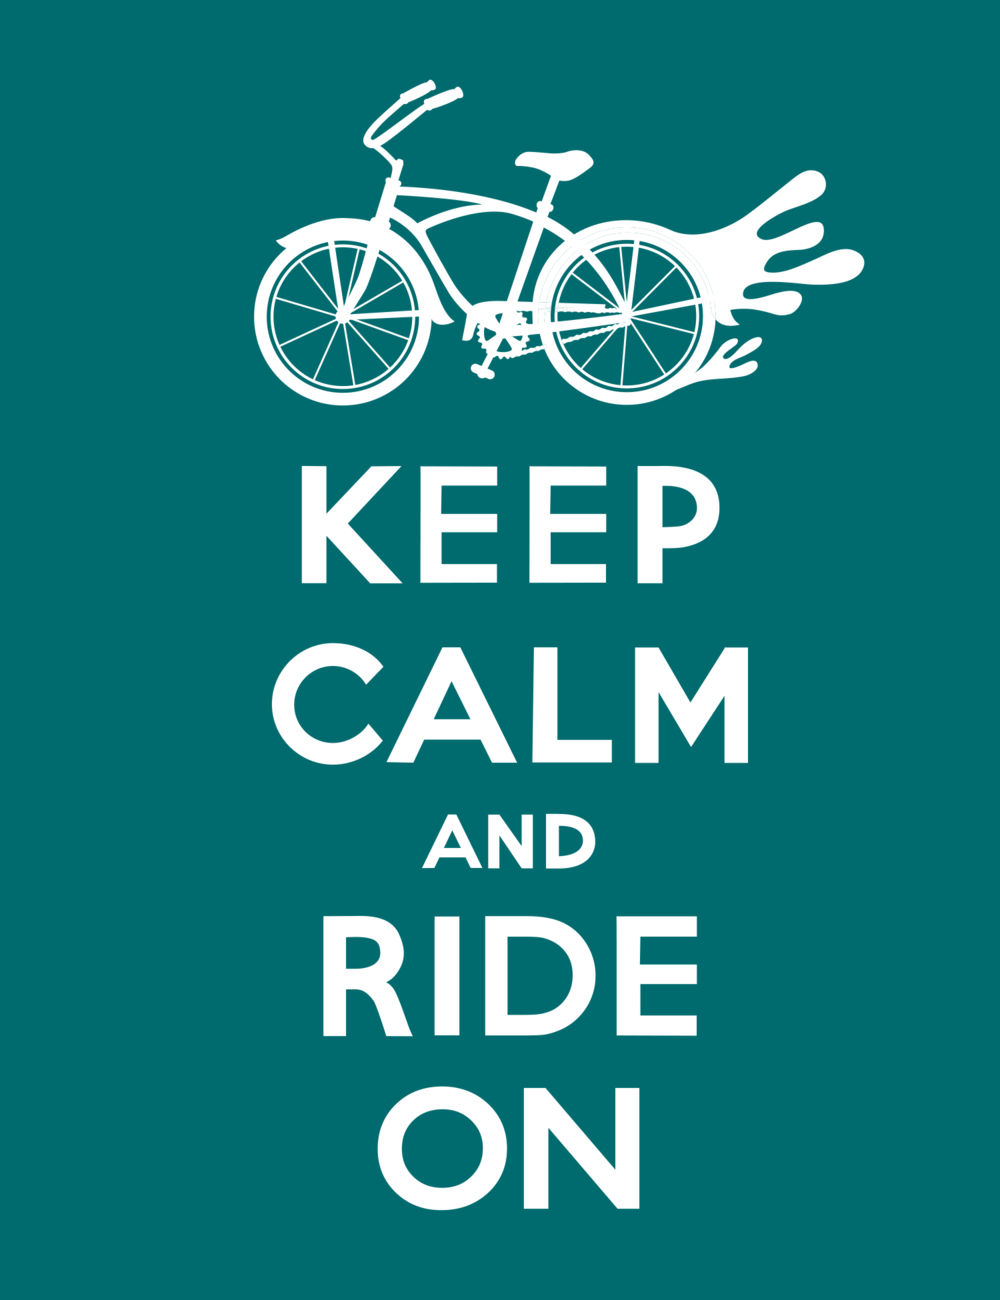 keep calm_ride_on_green_andi_bird.png